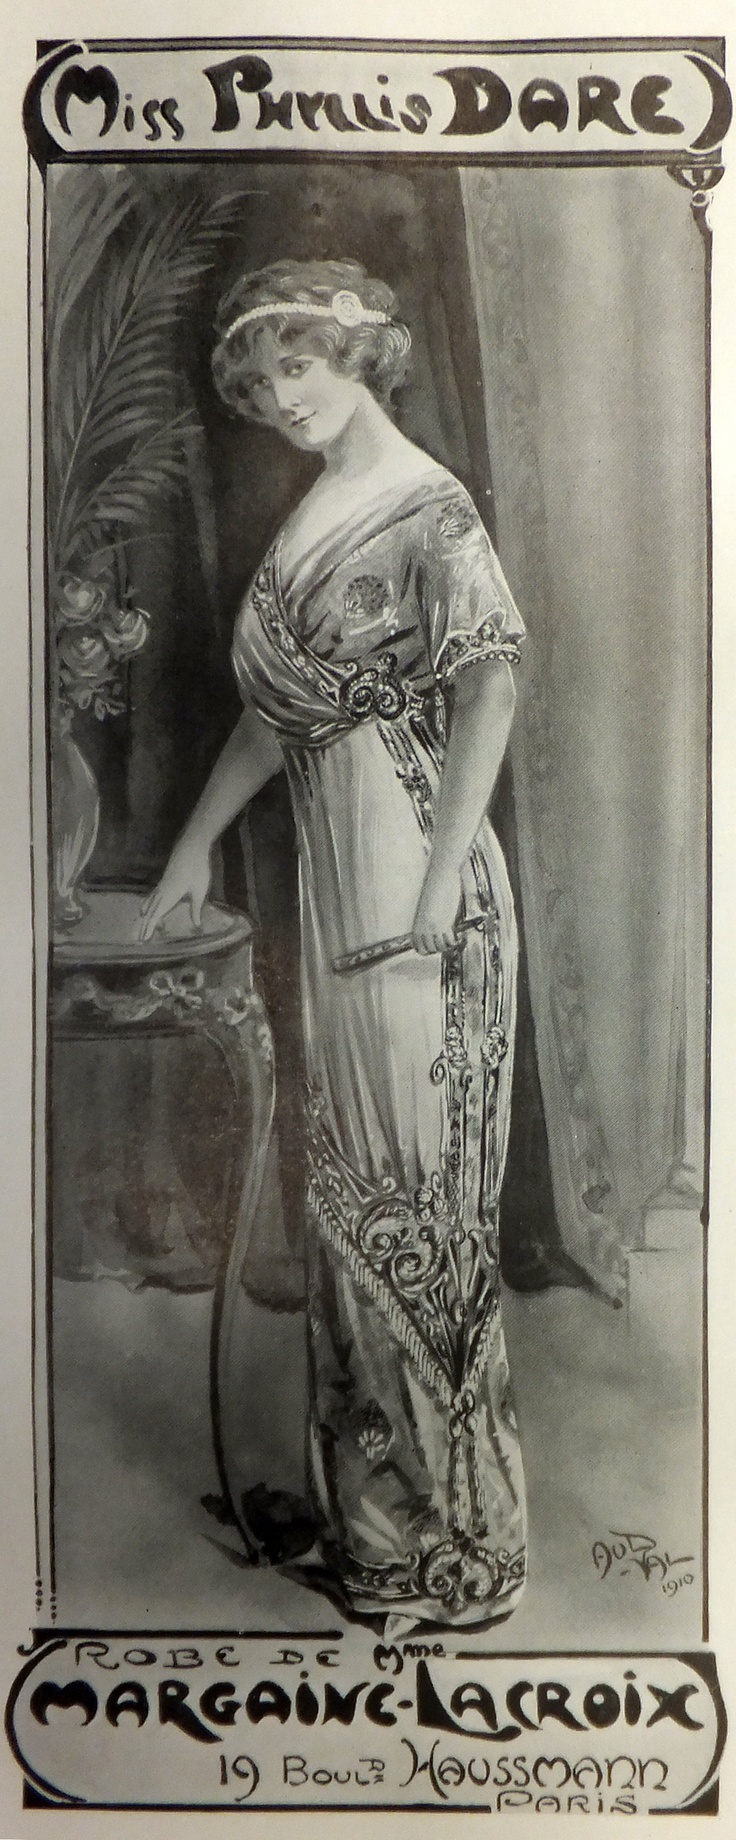 Phyllis Dare in The Girl in the Train, 1910. Vaudeville Theatre, London.  Margaine-Lacroix dressed many stars of the French stage and theatrical productions in both Paris and London